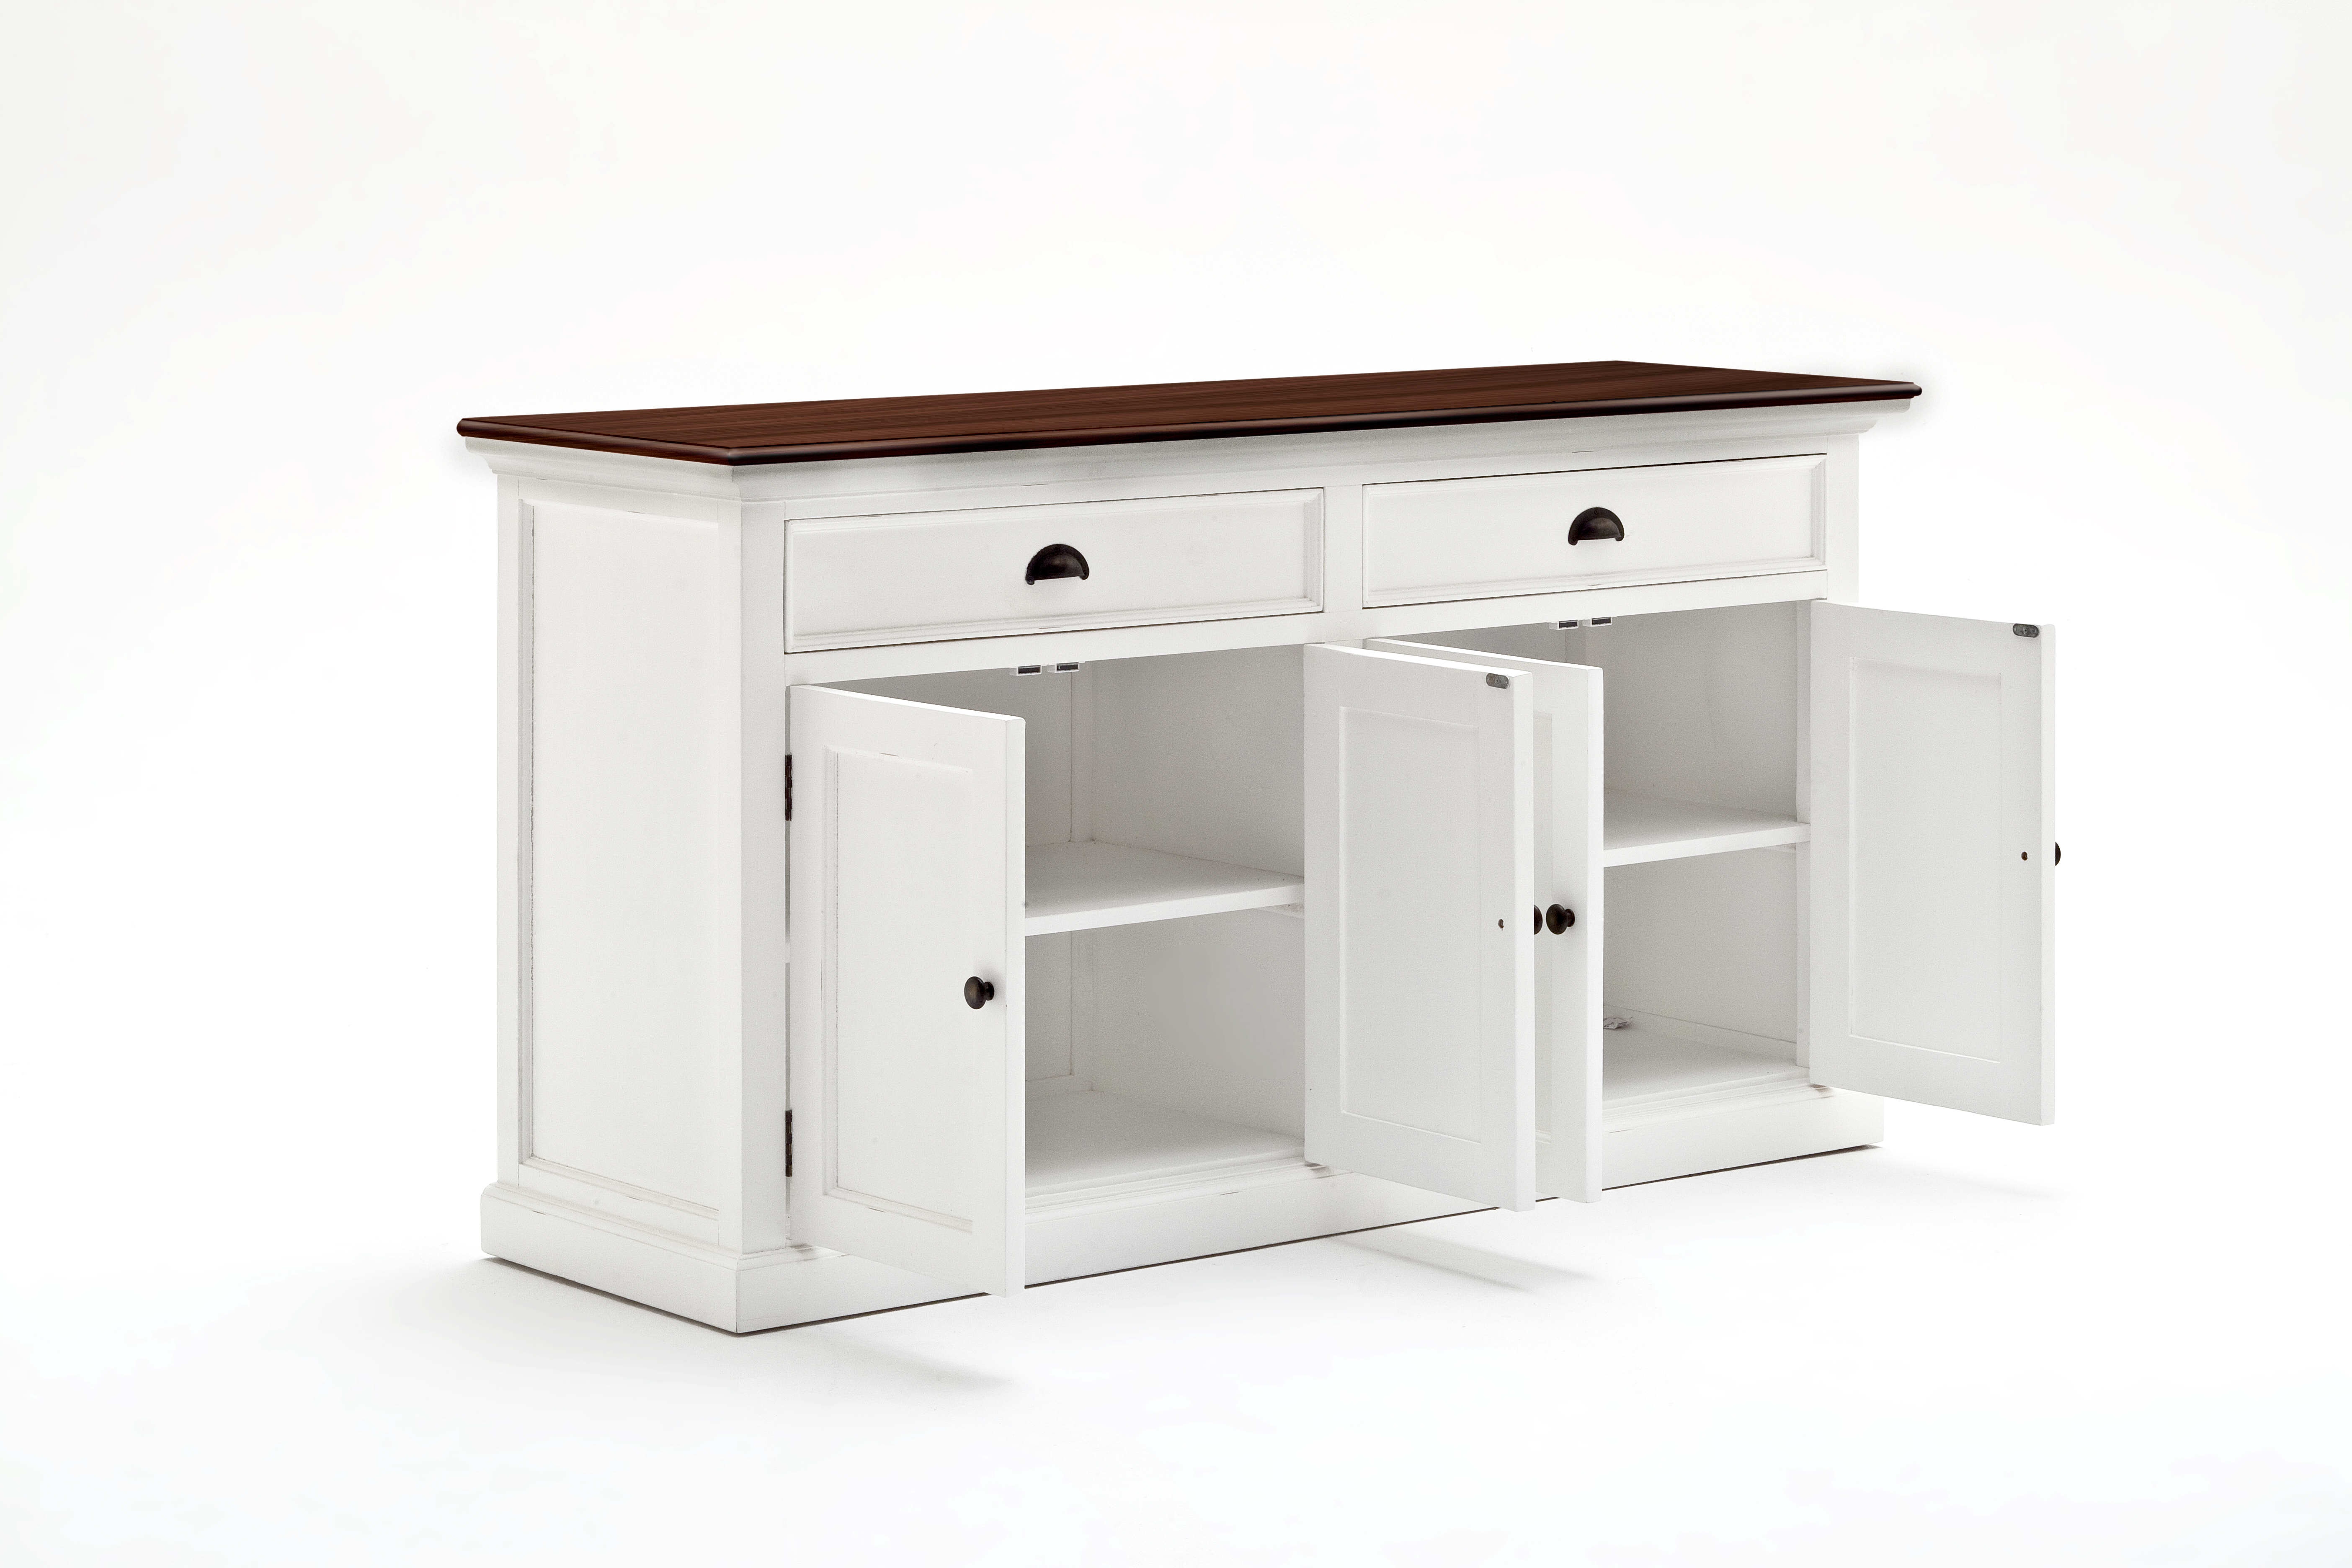 Details About Nova Solo Halifax Accent Solid Wood White & Mahogany Top  Buffet With 2 Drawers Pertaining To Grey Wooden Accent Buffets (Photo 11 of 30)